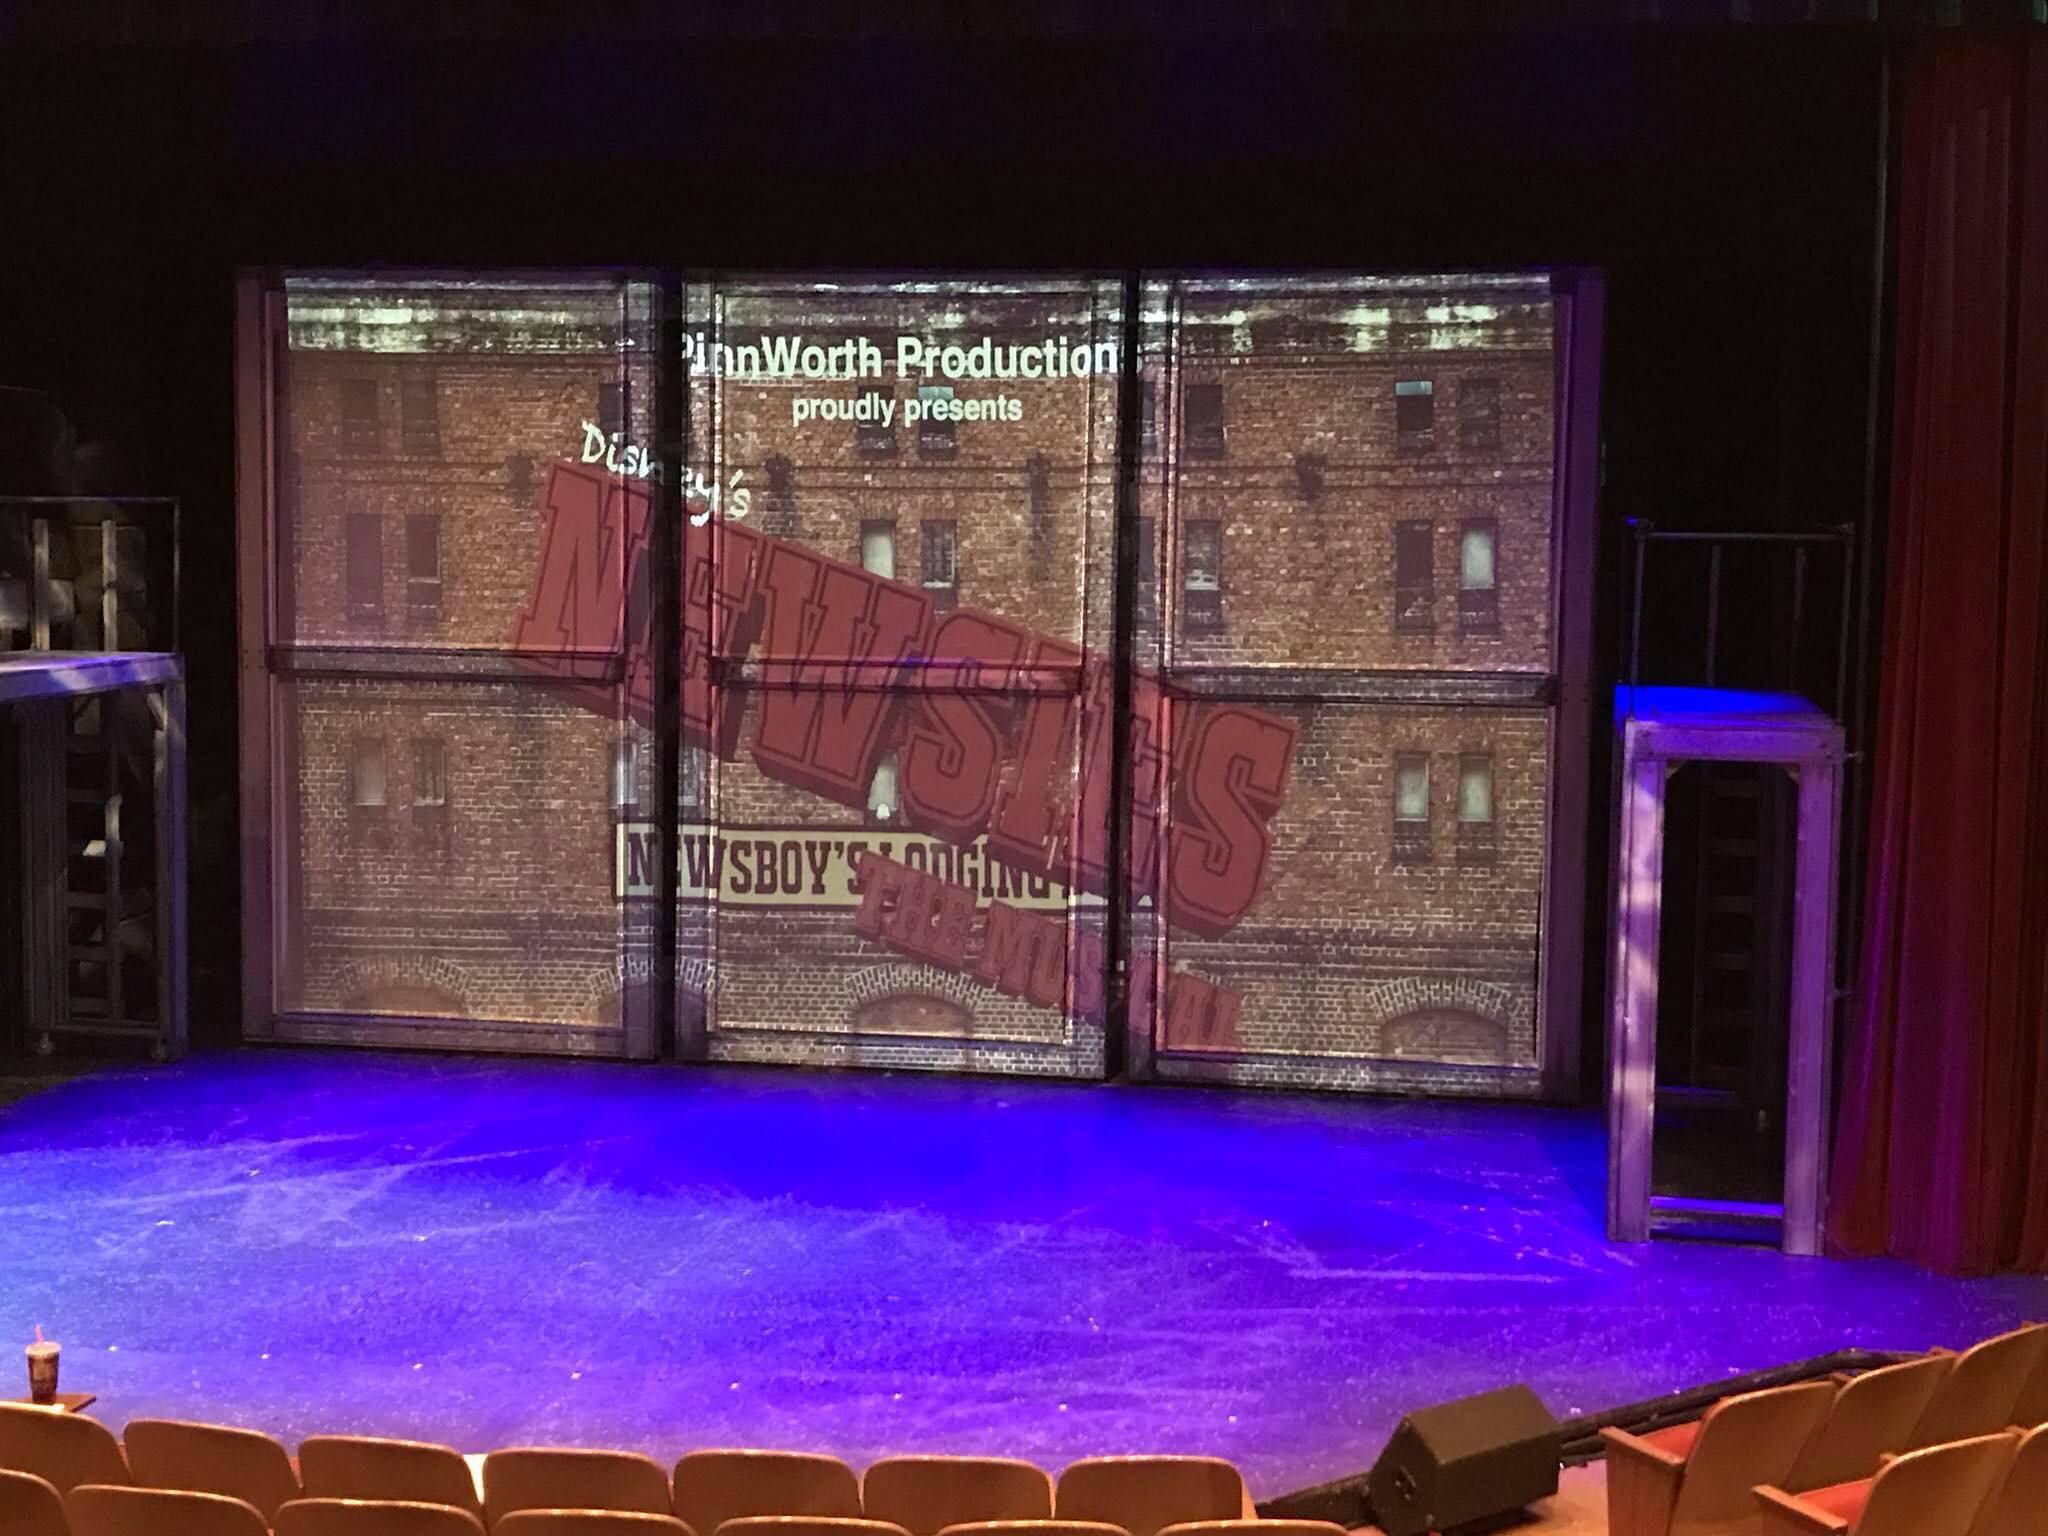 6 Projection screens - 6 pieces of black scrim cut to fit 'windows' of the towers available for purchase. Buyer to rig their own system for movement (but we'll be happy to show you what we did).